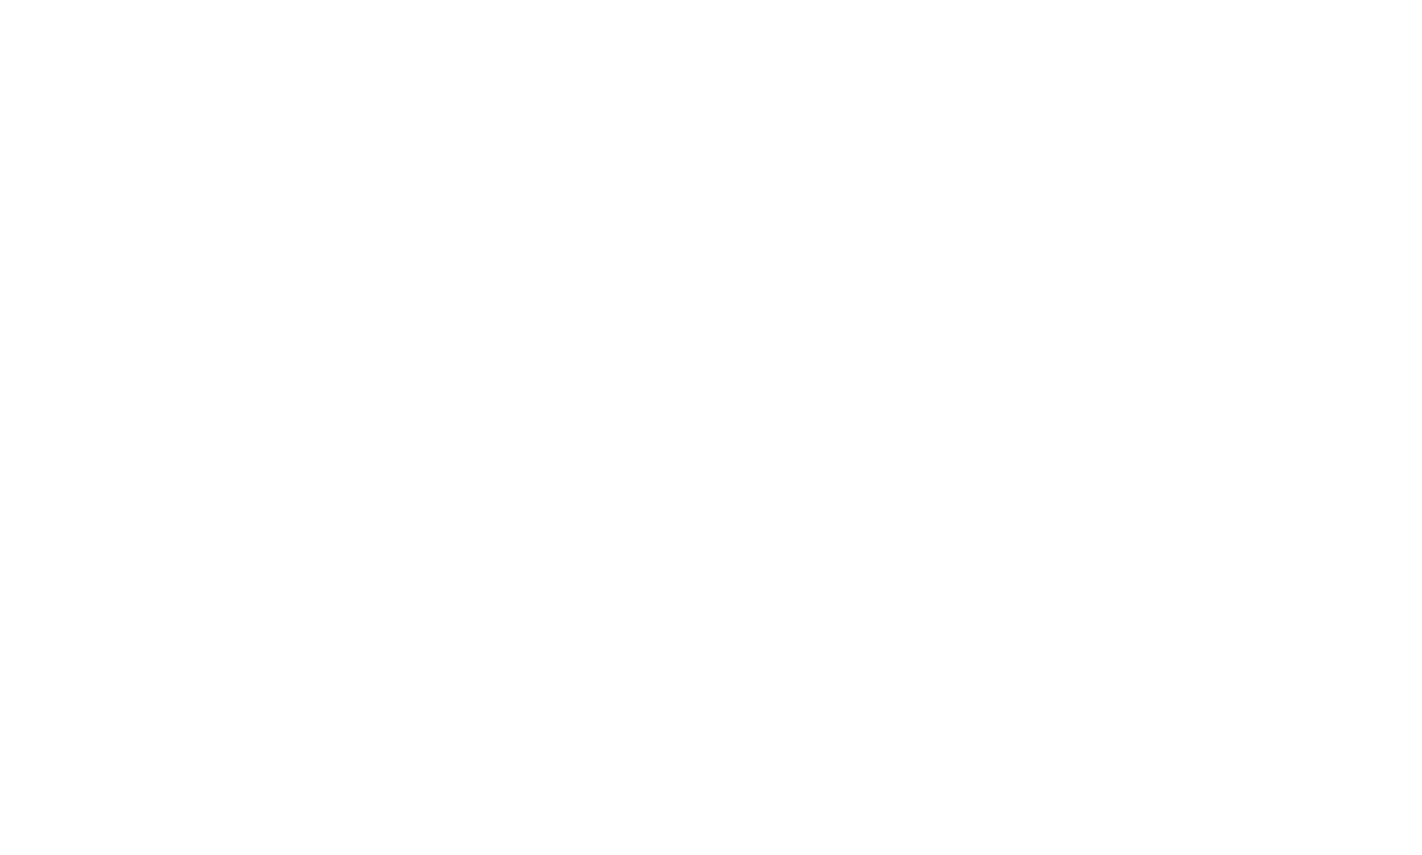 Stay informed, coronavirus local updates